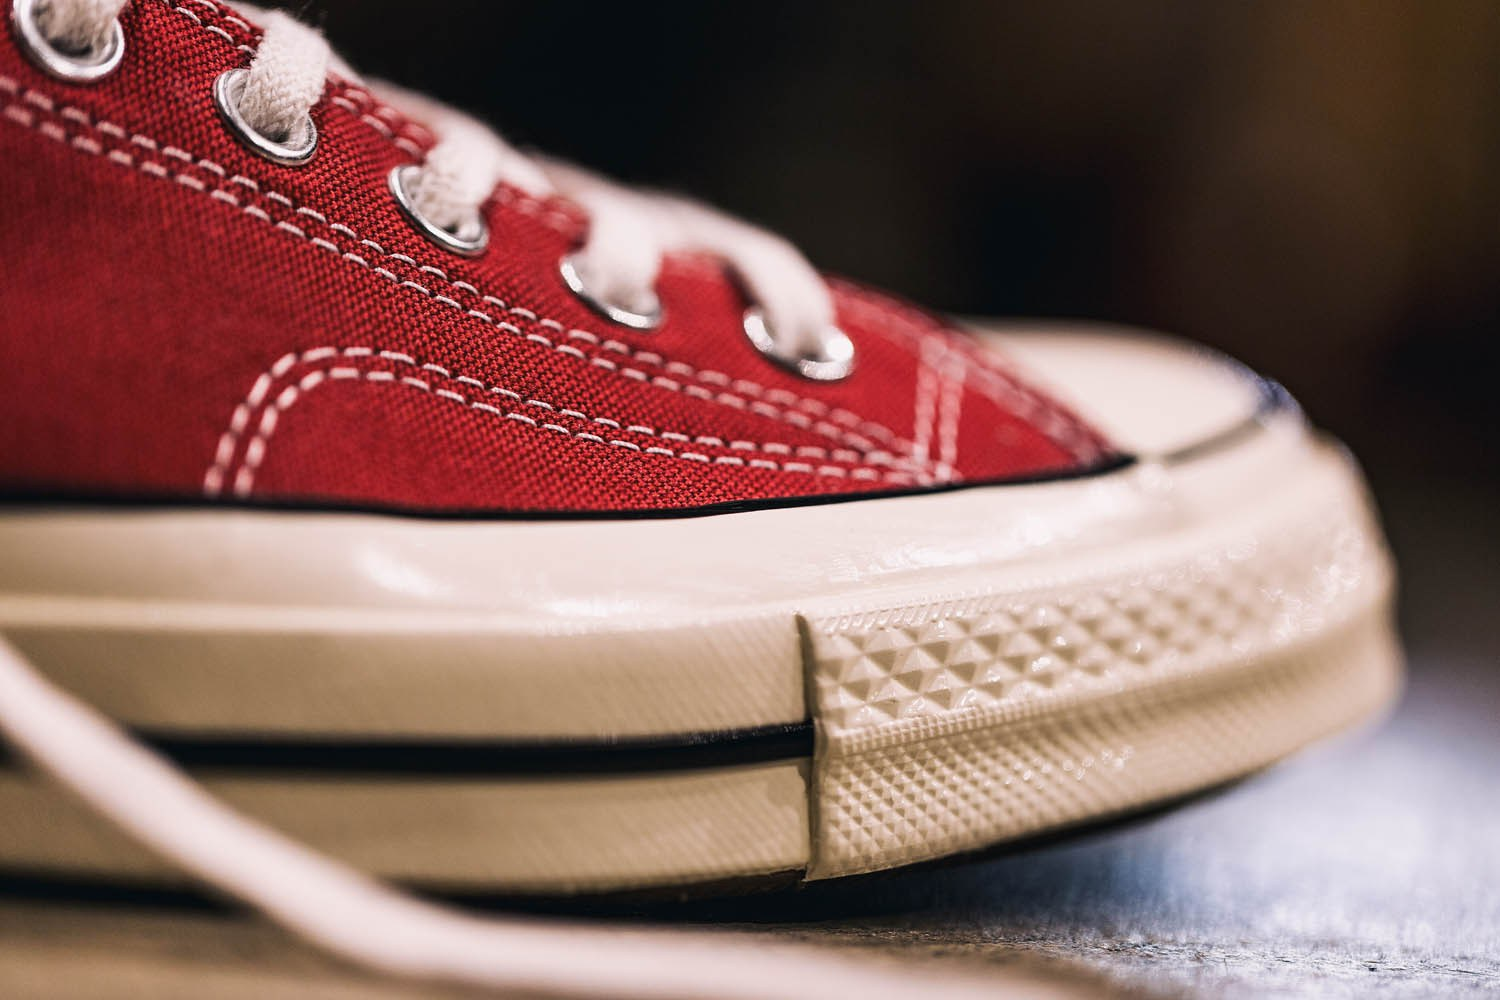 converse-shows-its-colors-with-its-latest-chuck-taylor-all-star-70s-release-13